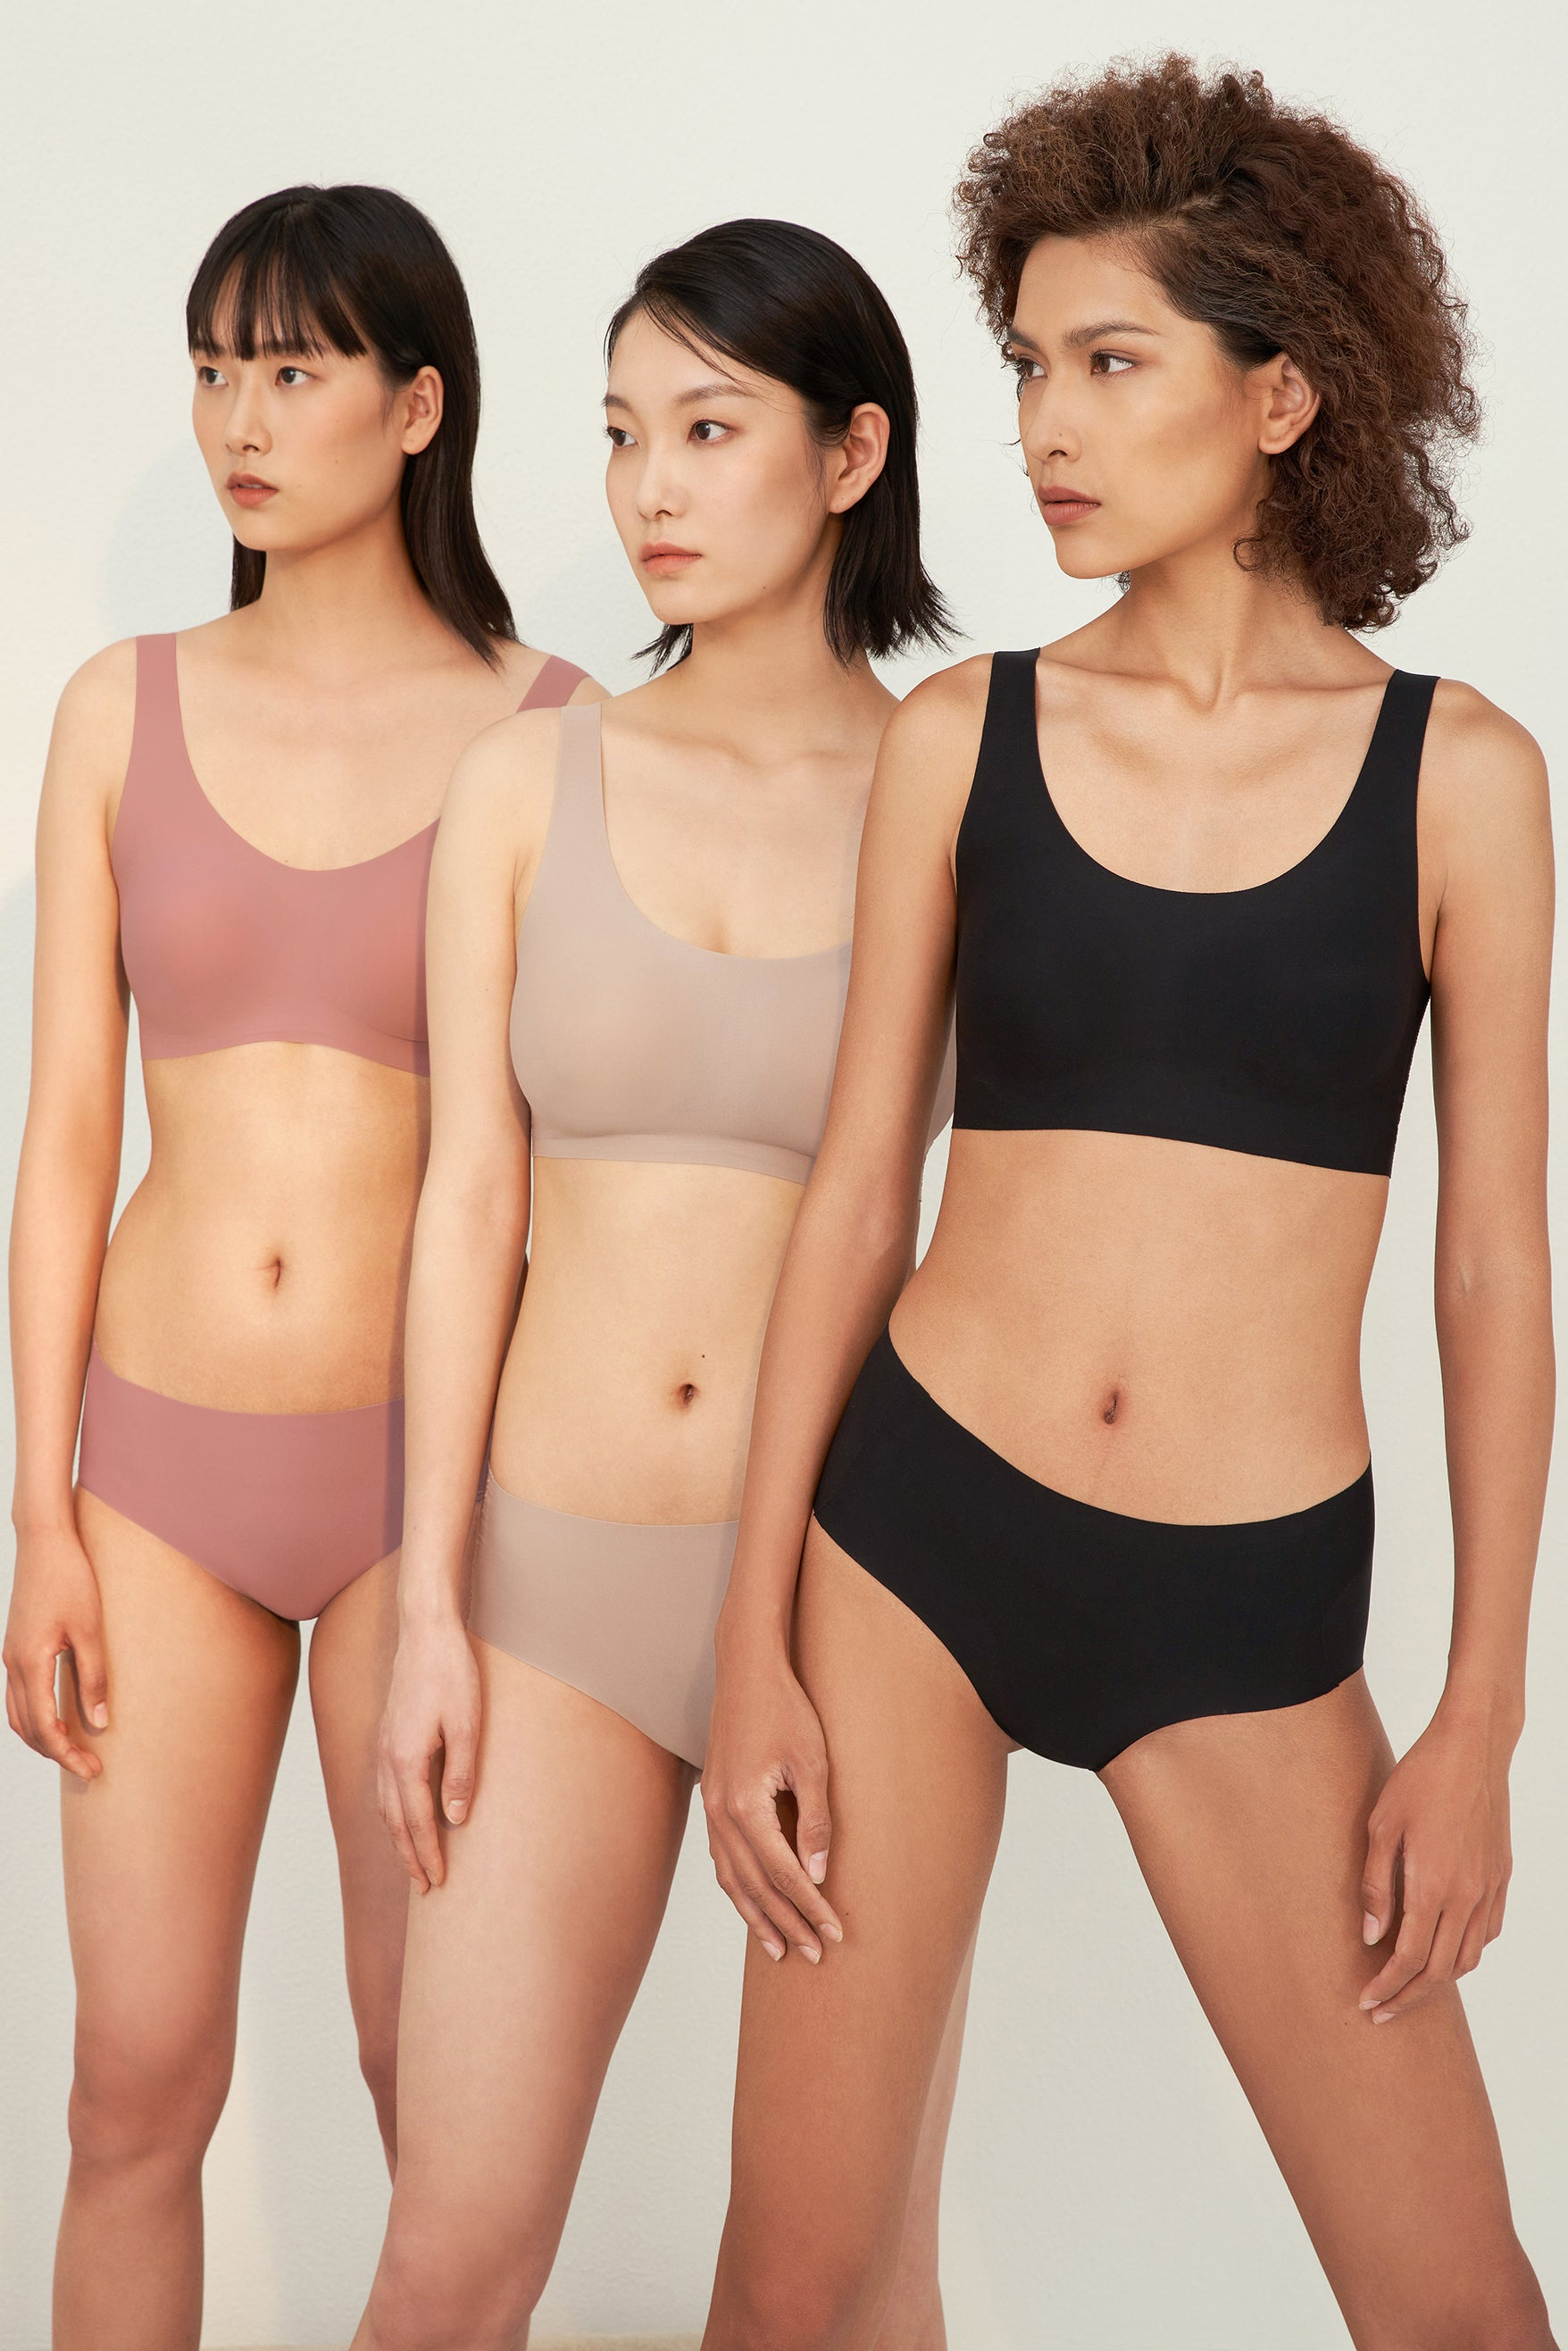 Models wearing NEIWAI's Barely Zero bra and brief set in coral, nude, and black.